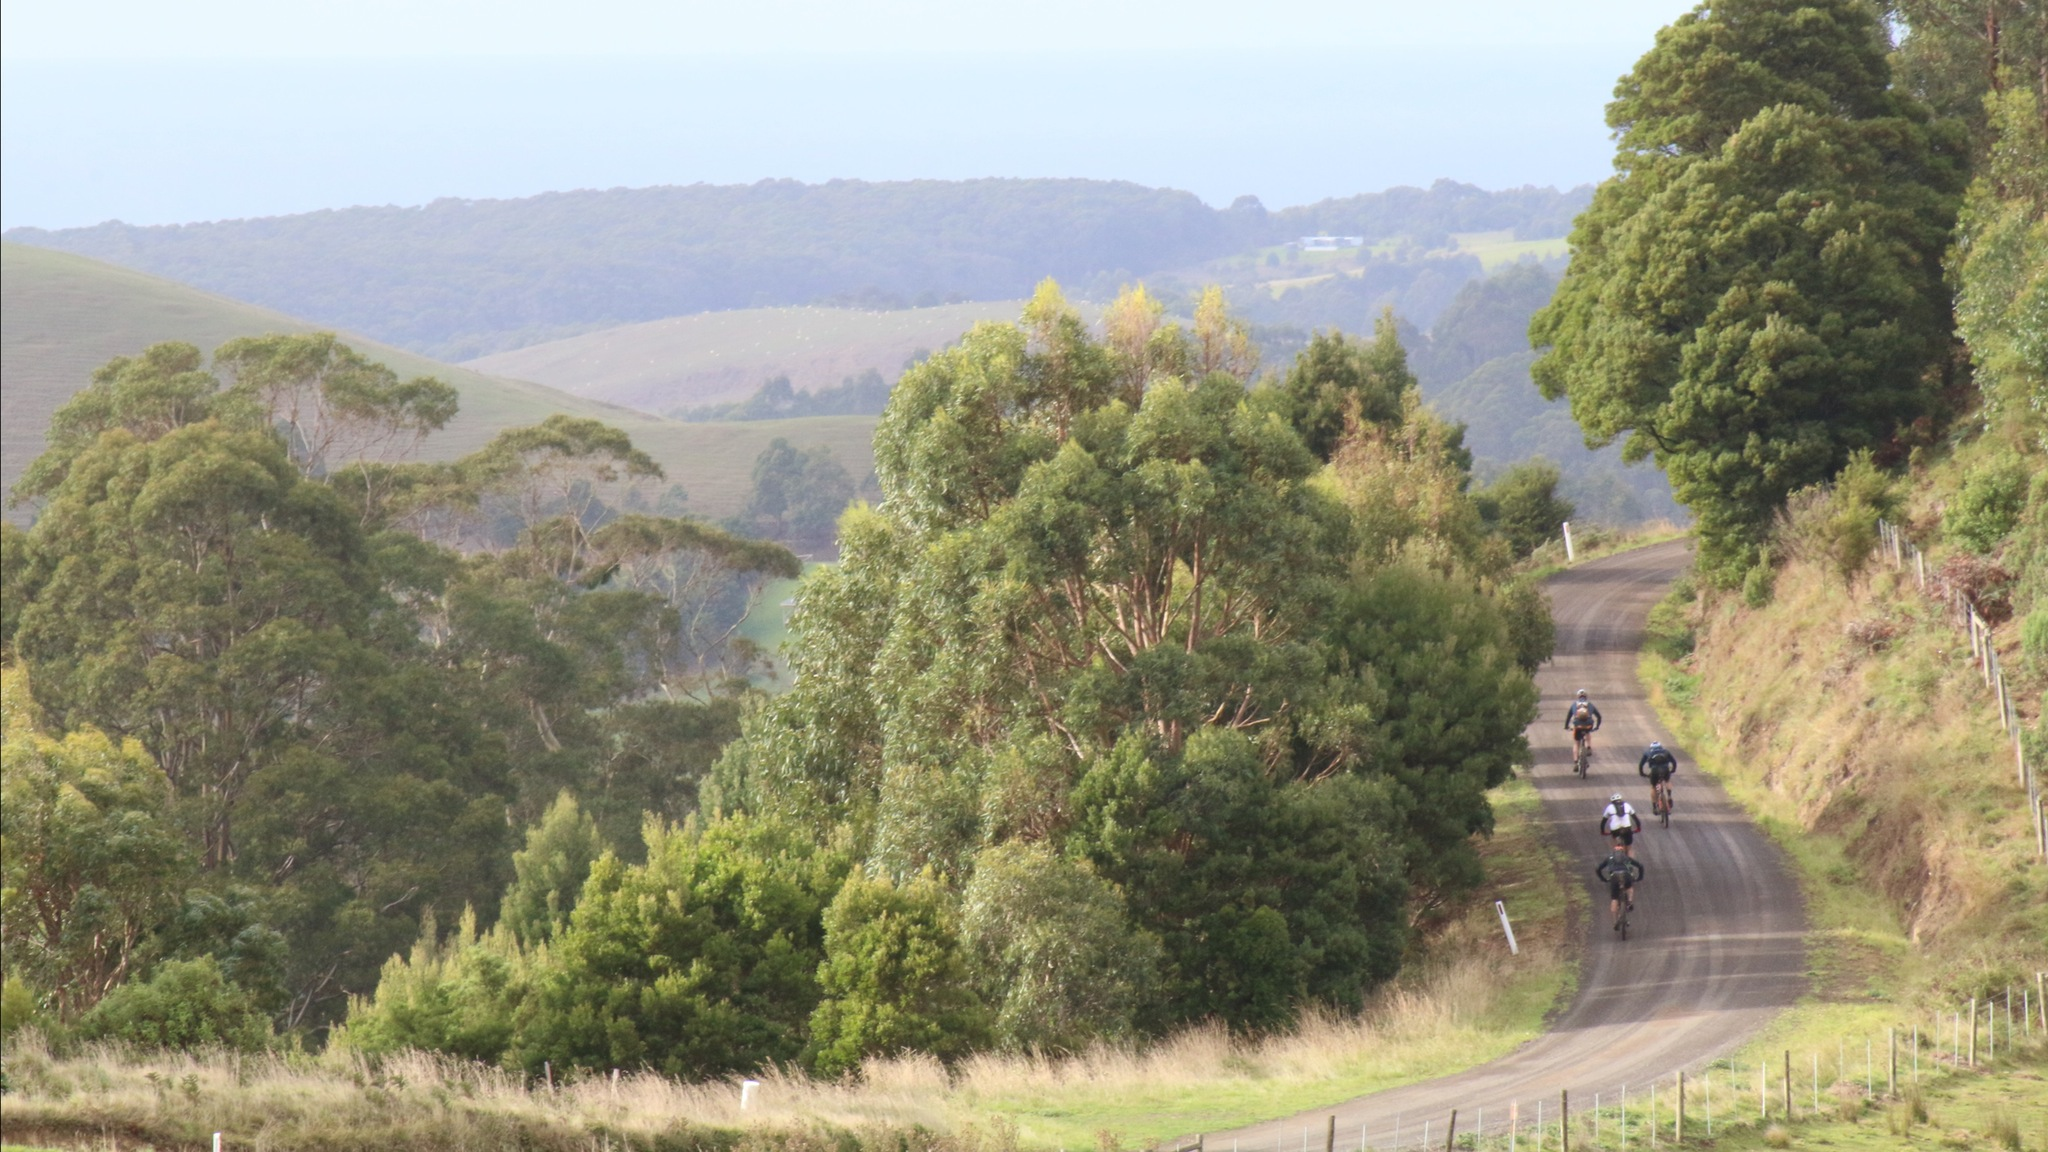 Spectacular scenery on the Otway 300 course